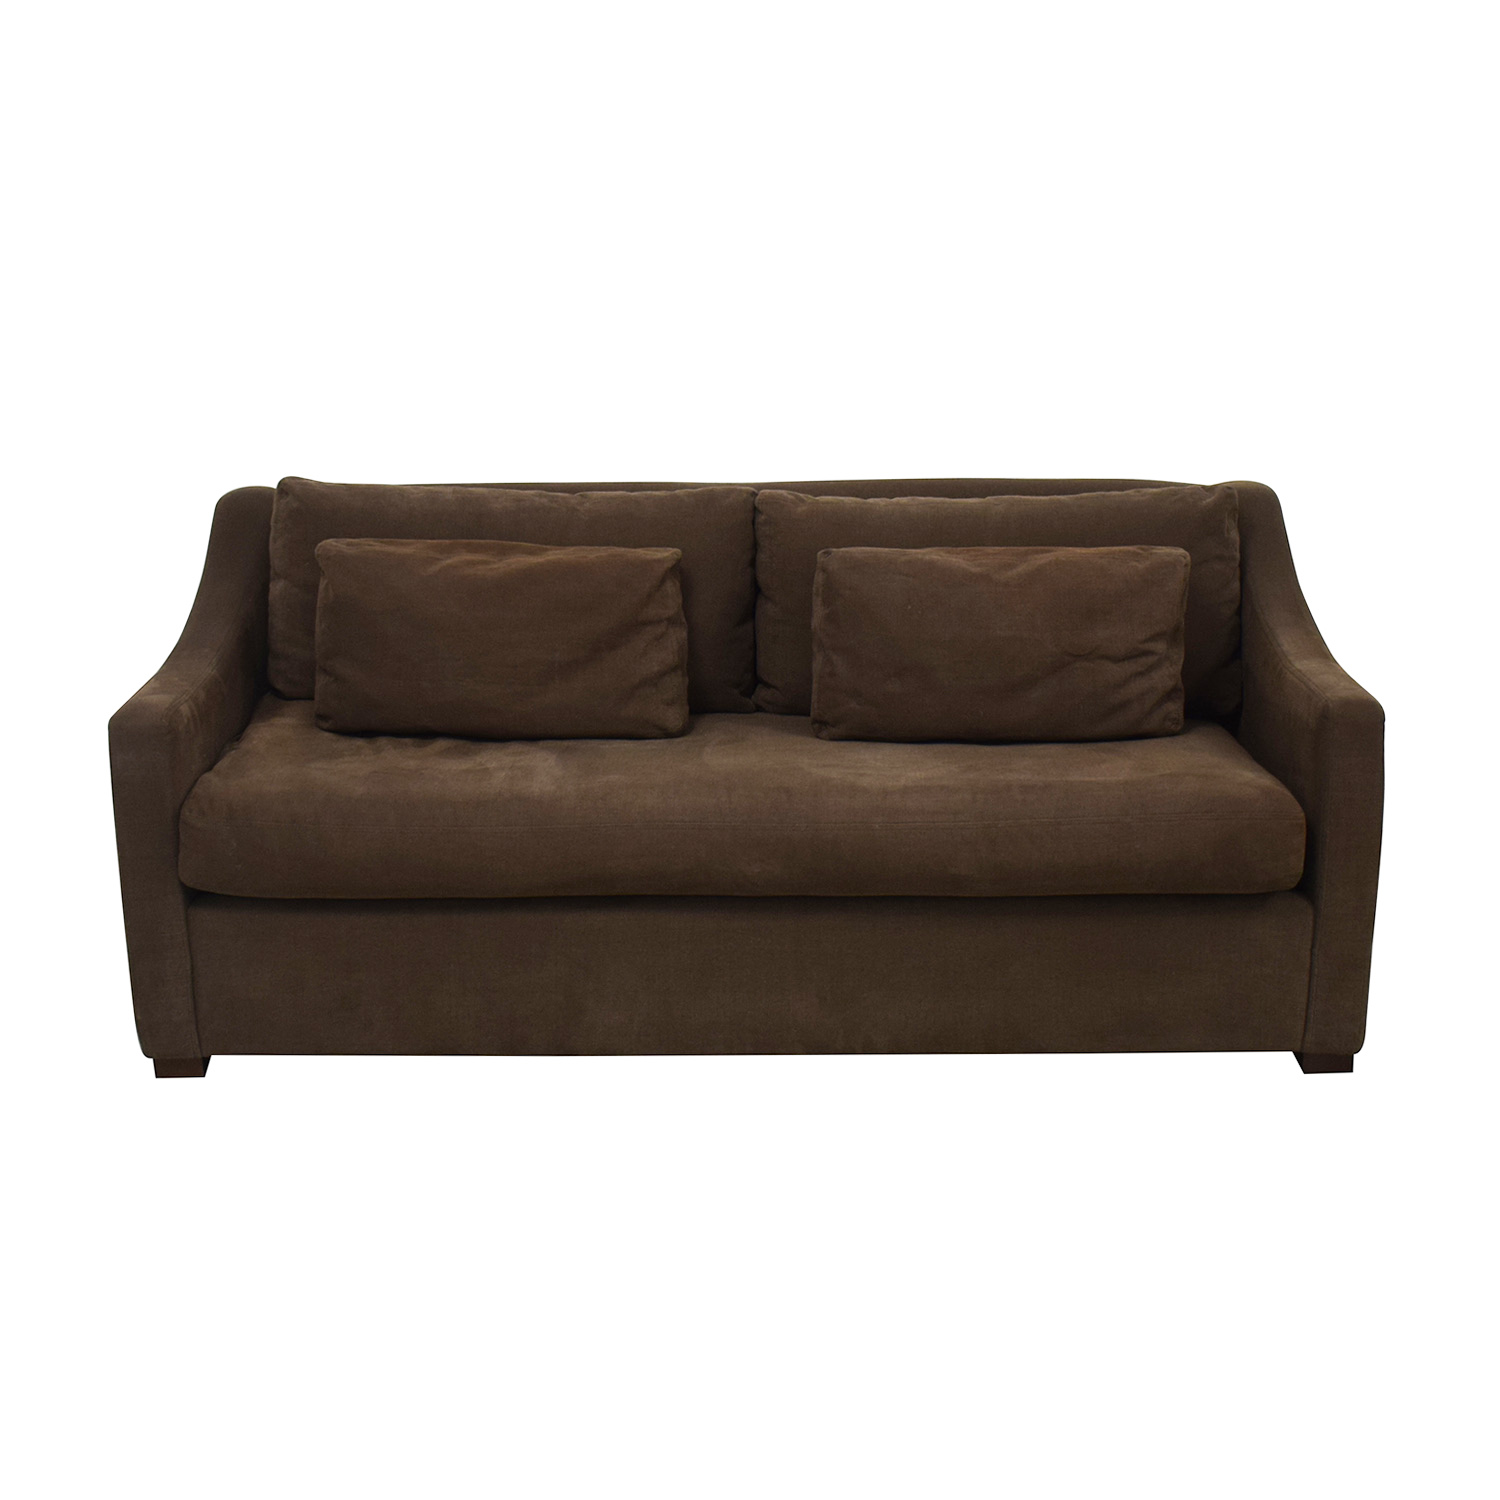 shop Restoration Hardware Belgian Slope Arm Sofa Restoration Hardware